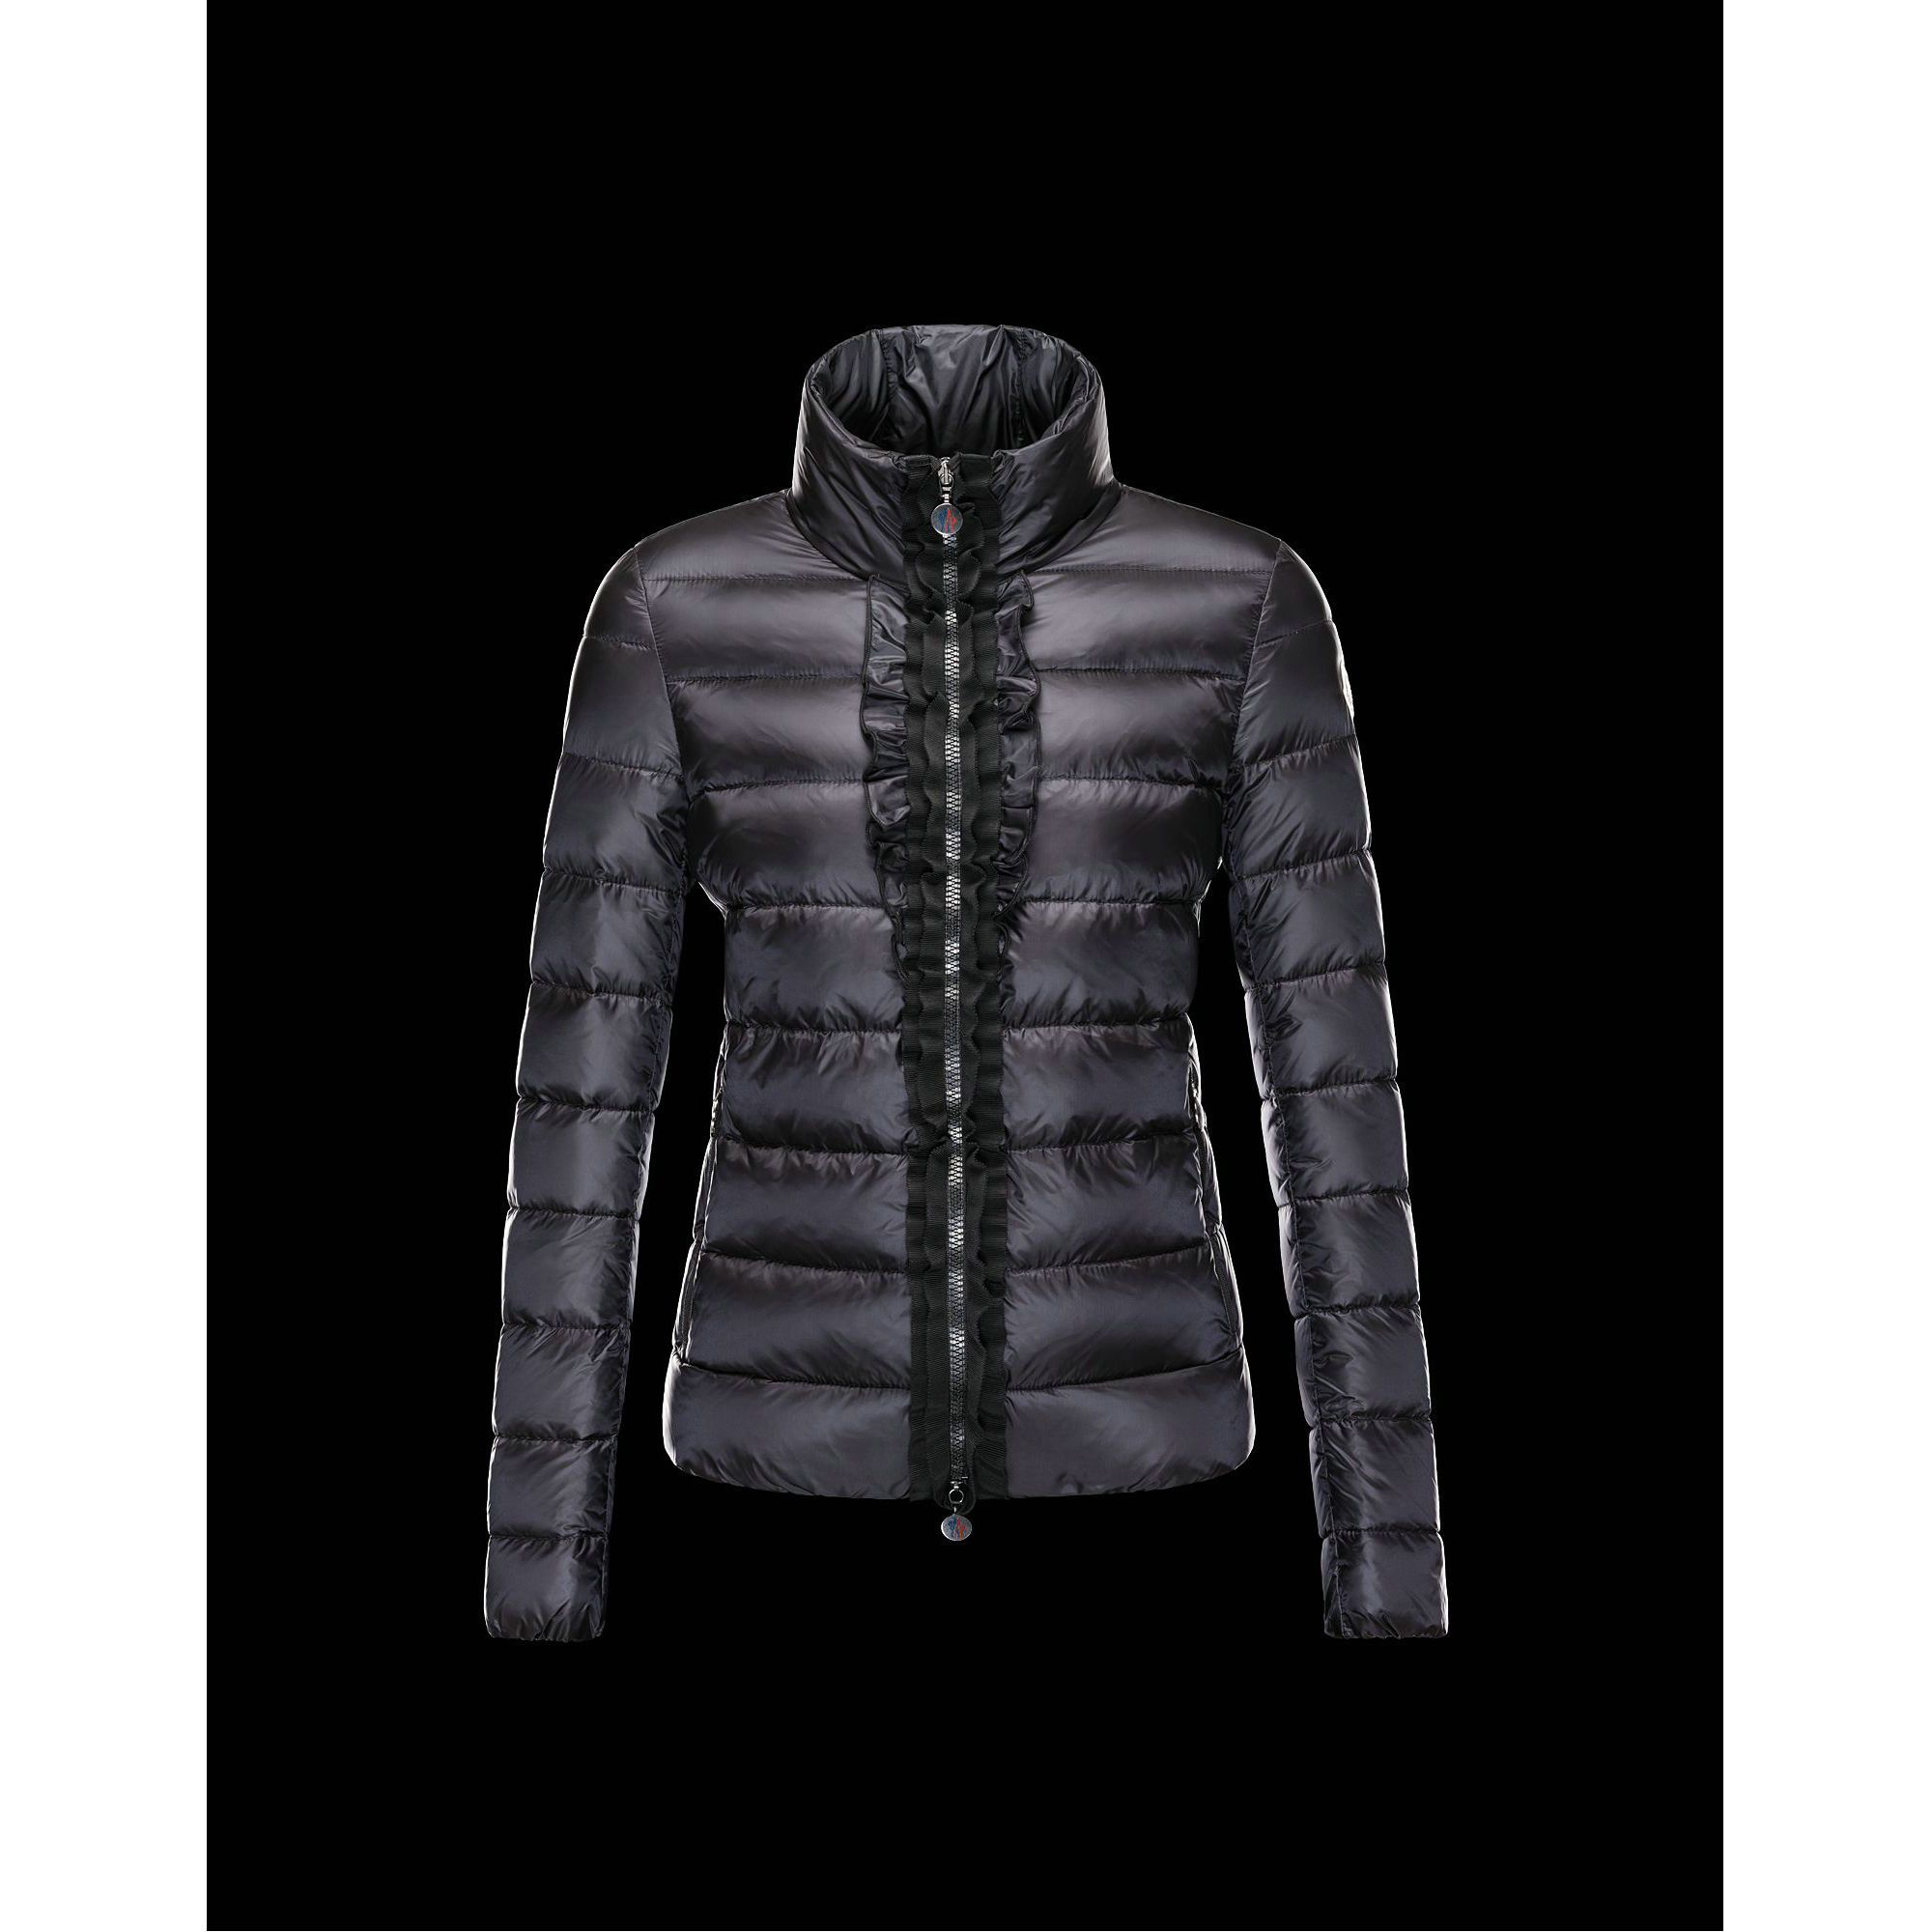 2015 New! Moncler OXALIS Down Jackets Womens Collar Black